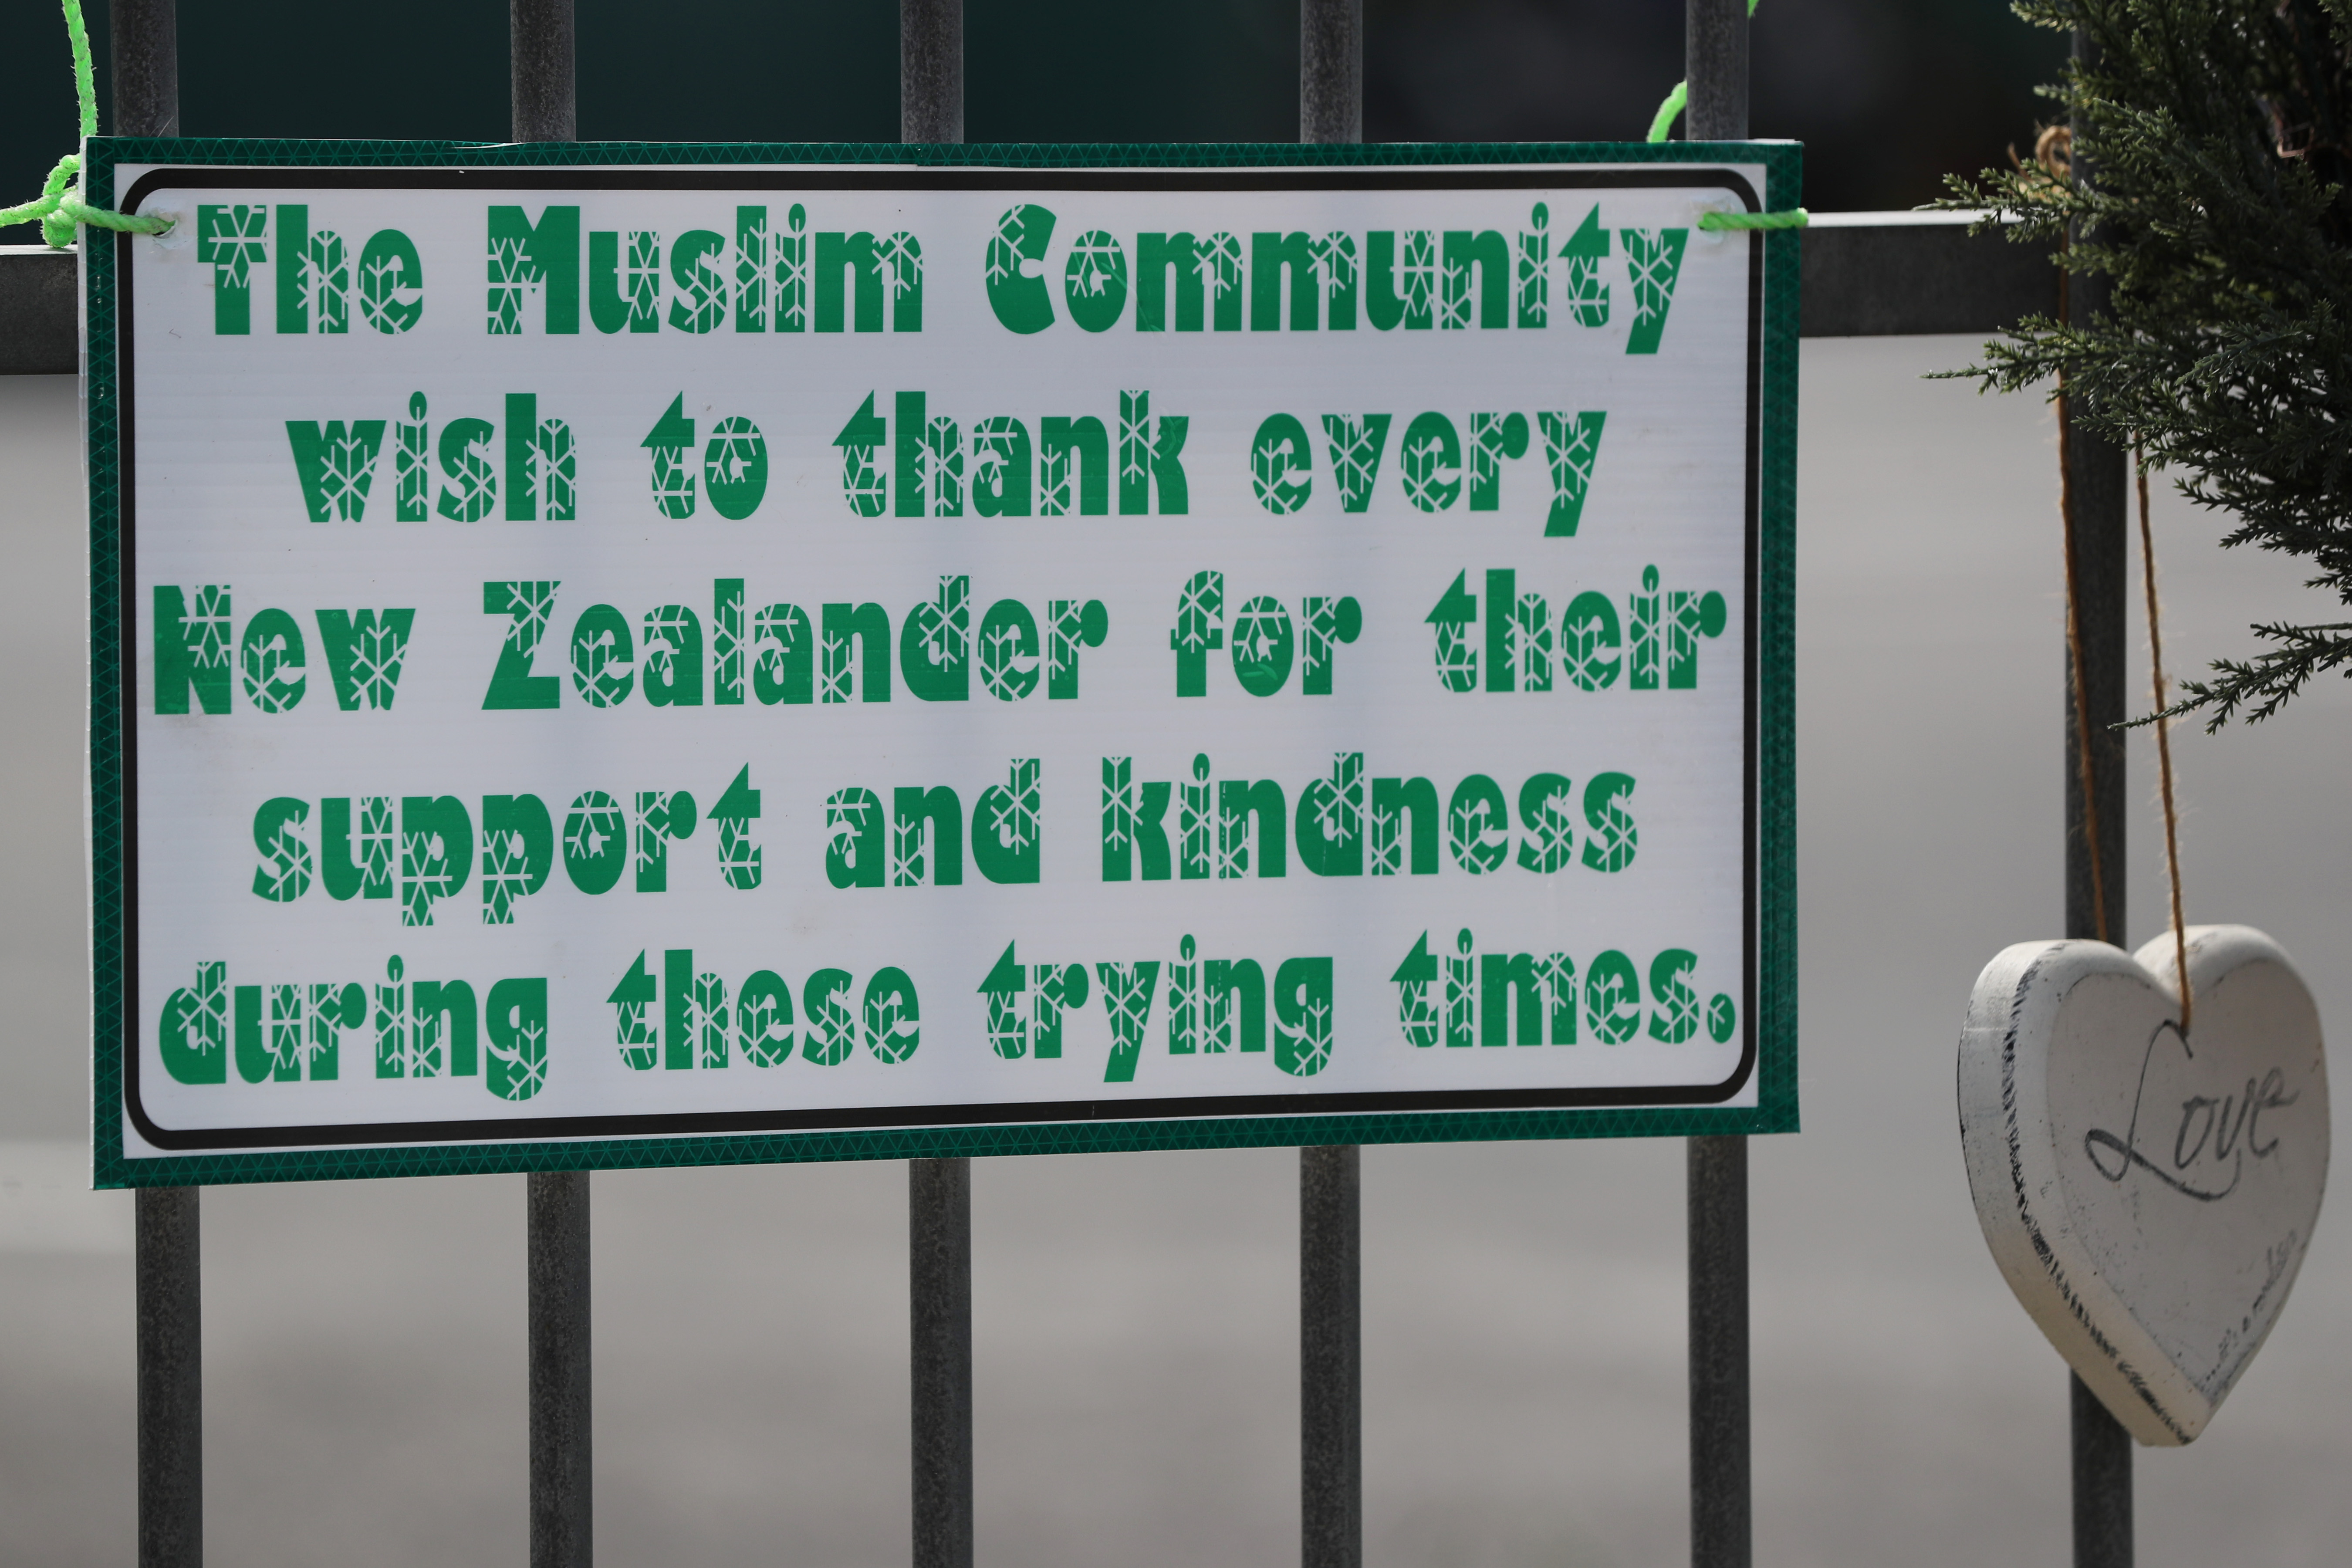 Messages of support for the victims of the mosques attacks in Christchurch at the Masjid Umar mosque in Auckland, March 17, 2019.